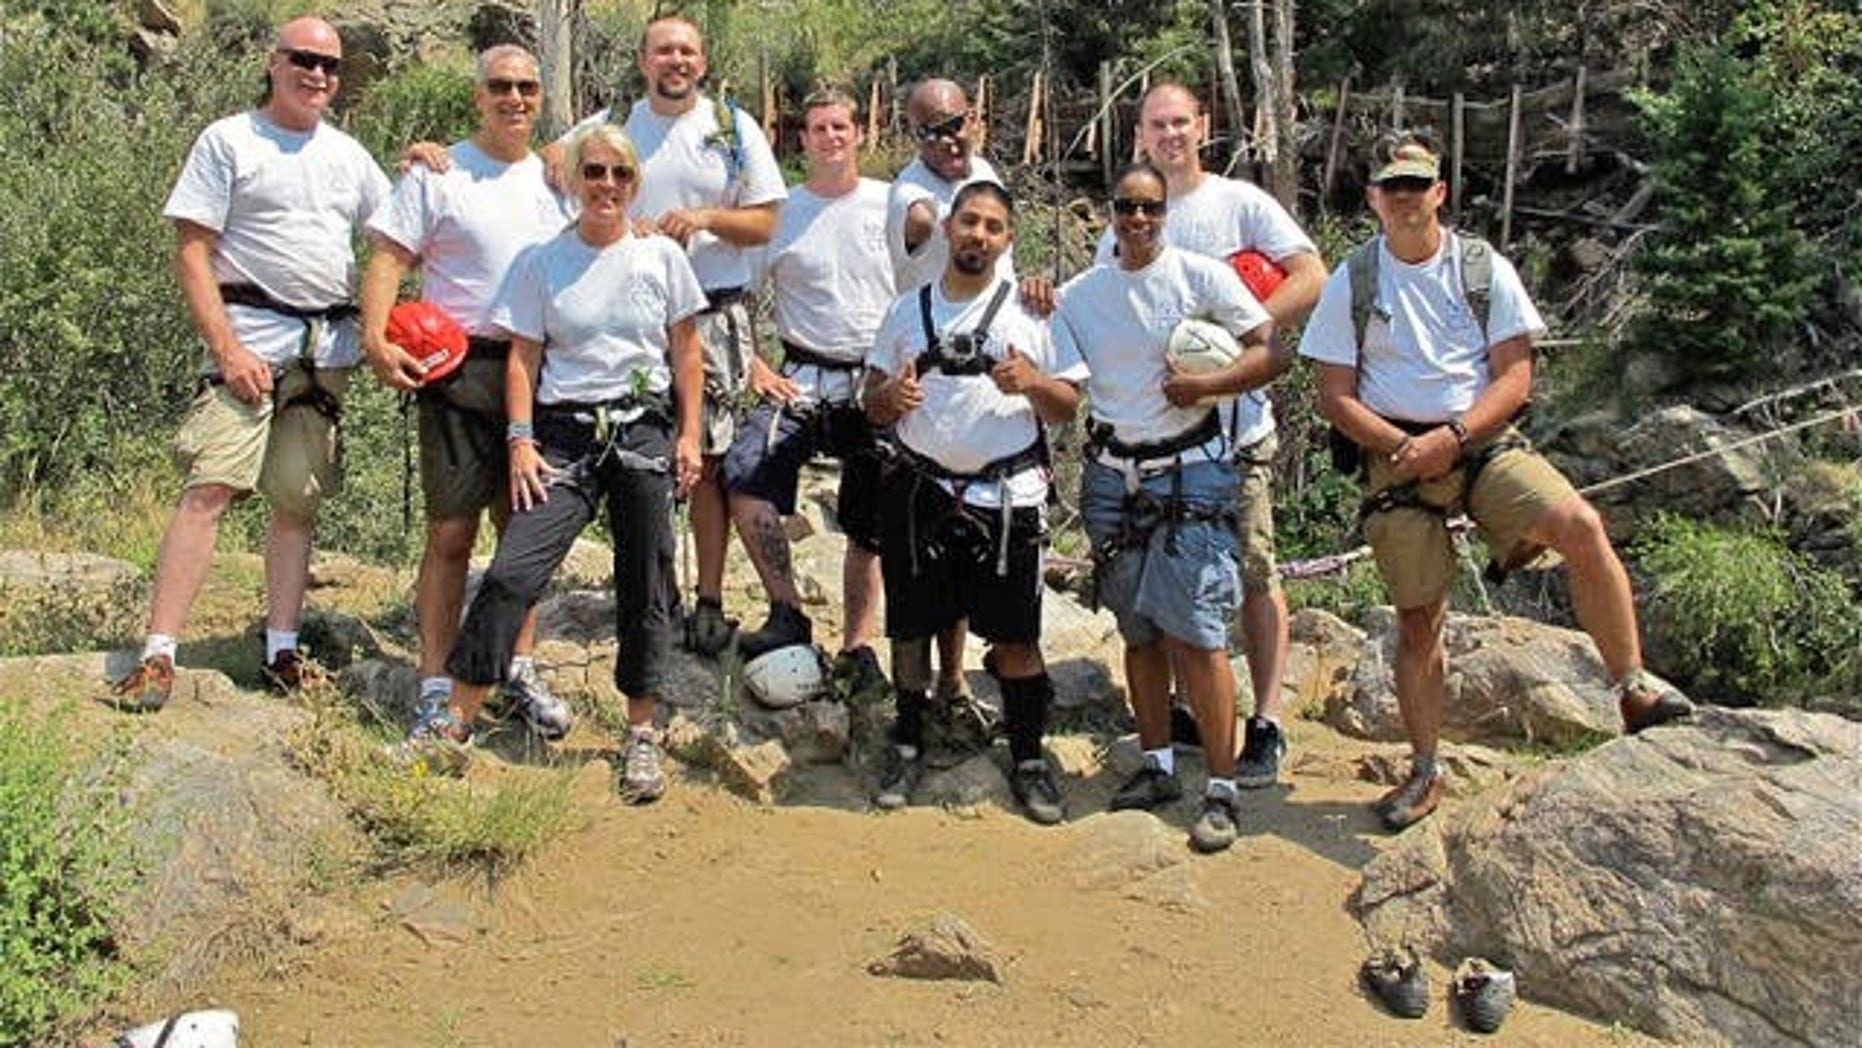 Carlos Gomez with several other combat-wounded veterans on the No Boundaries inaugural trip to Colorado in 2013.